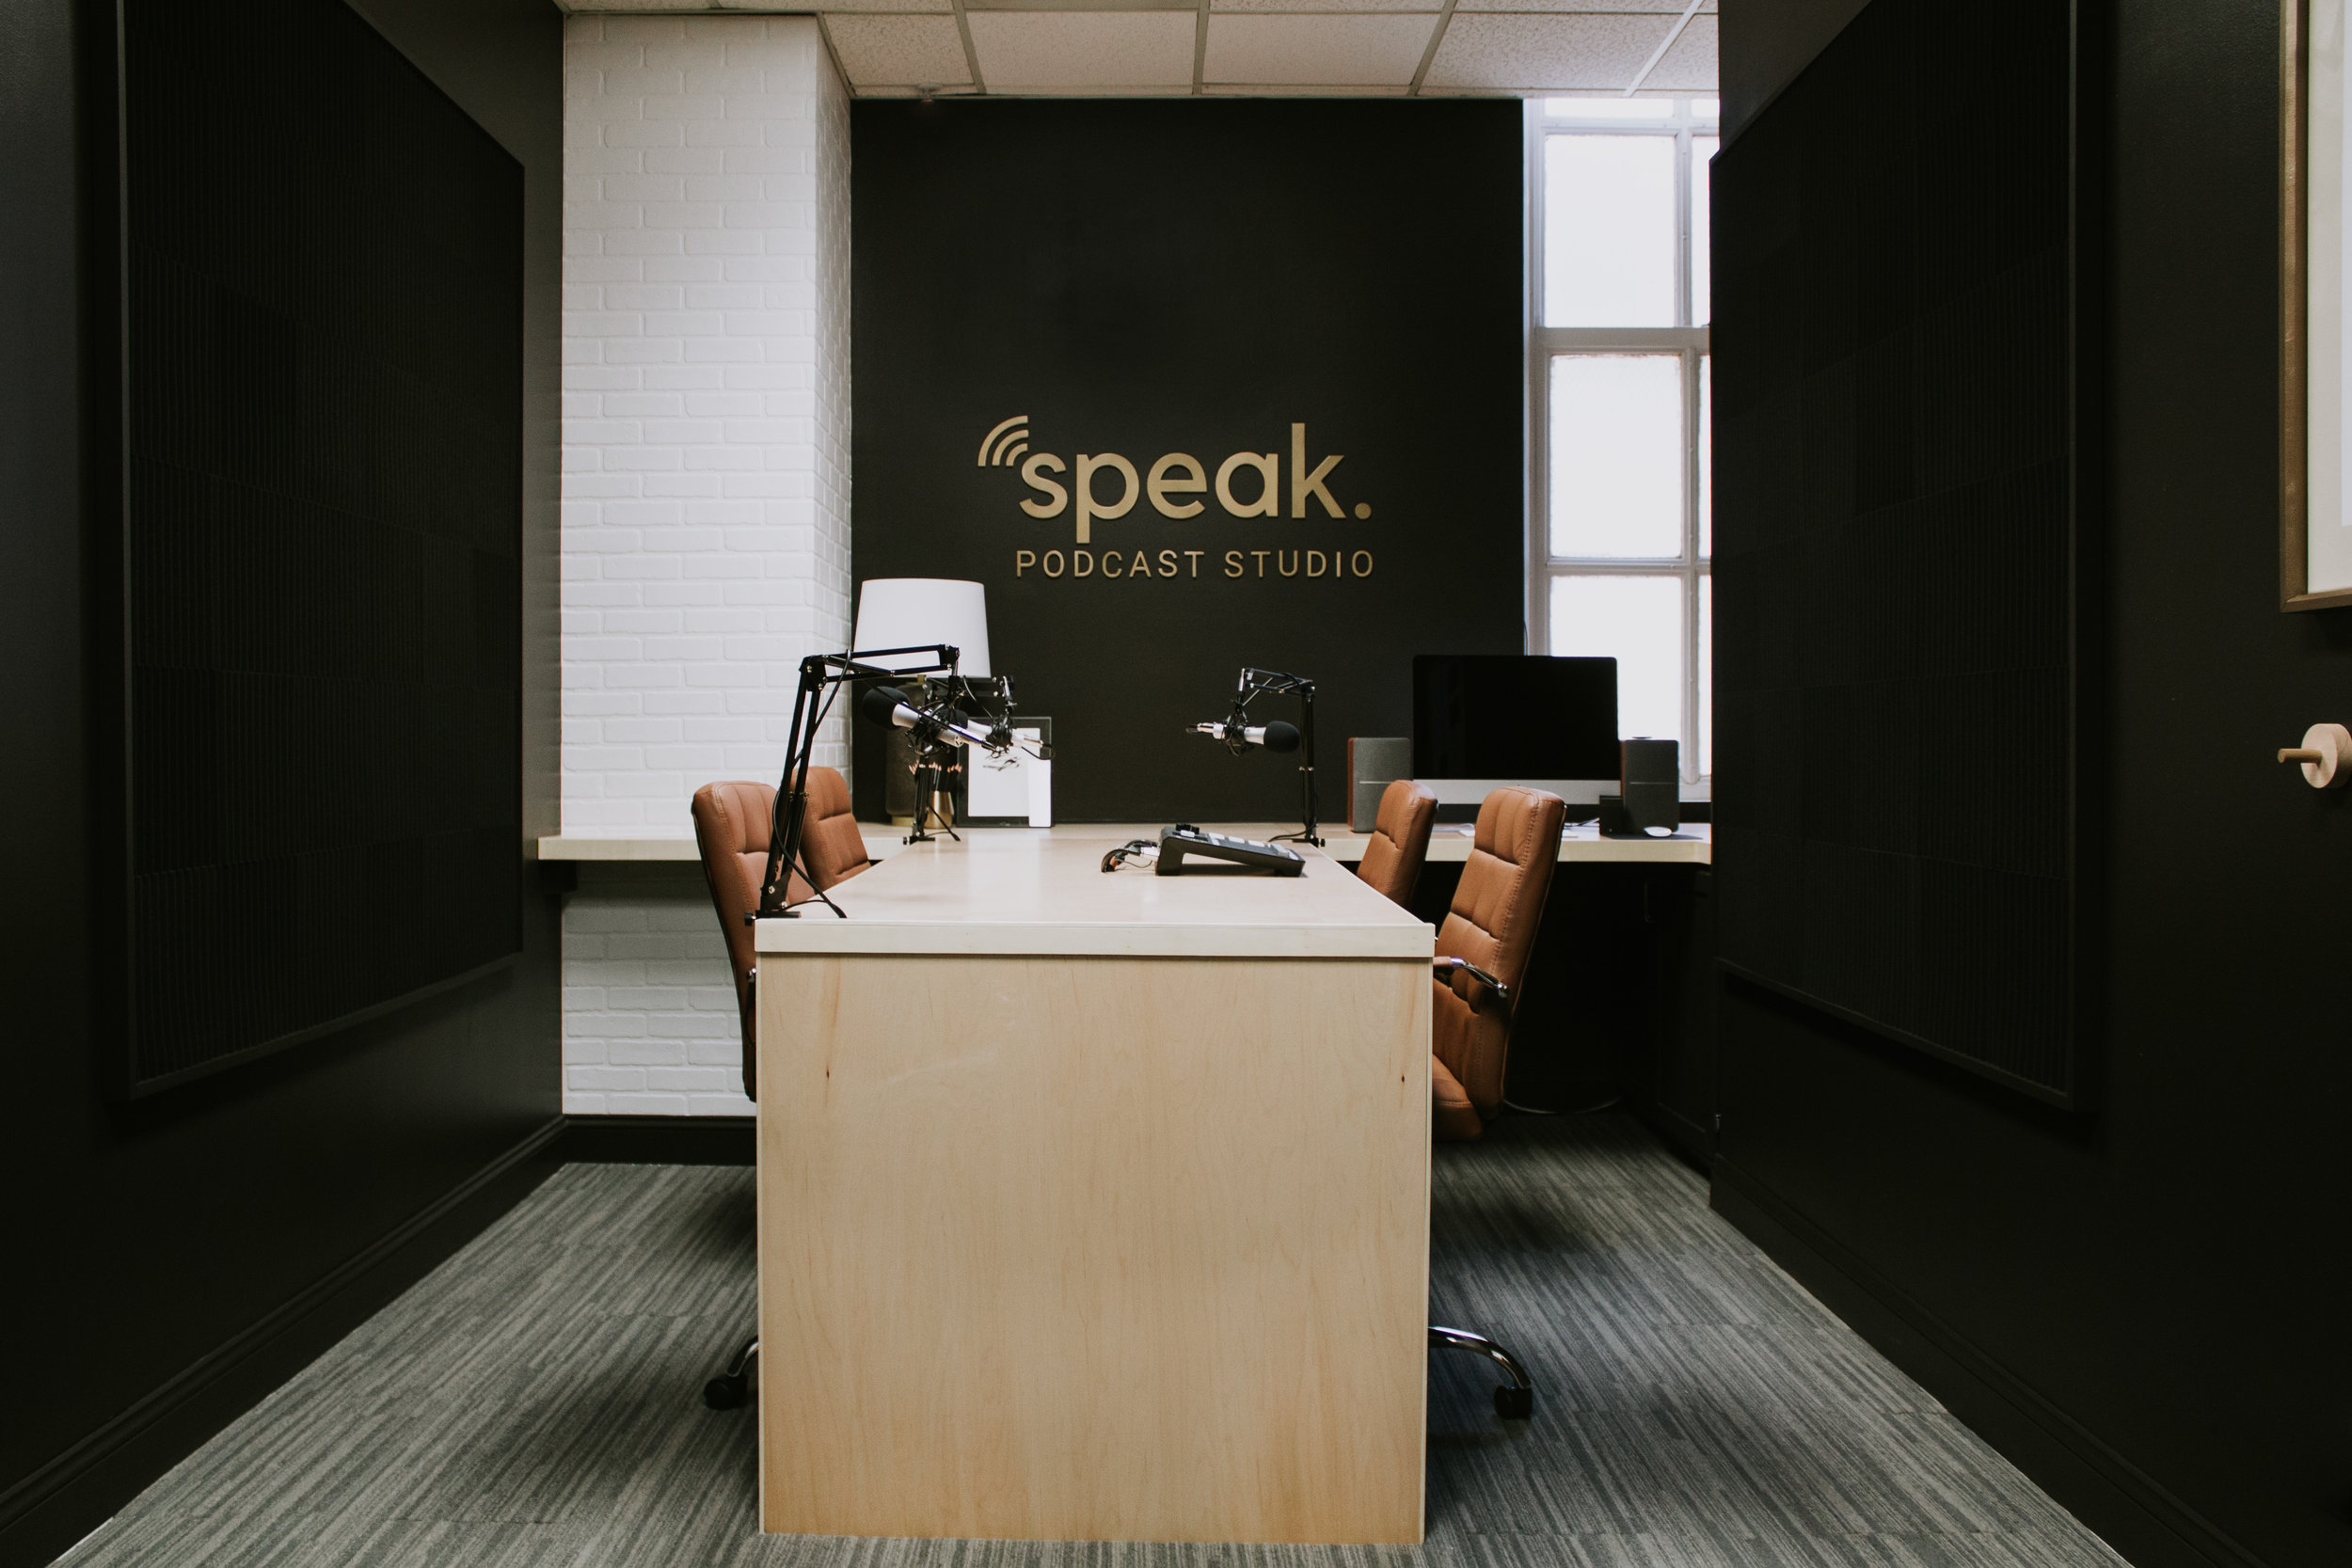 Speak Podcast Studio - located in Lincoln Nebraska. A podcast recording studio available to anyone with a message.